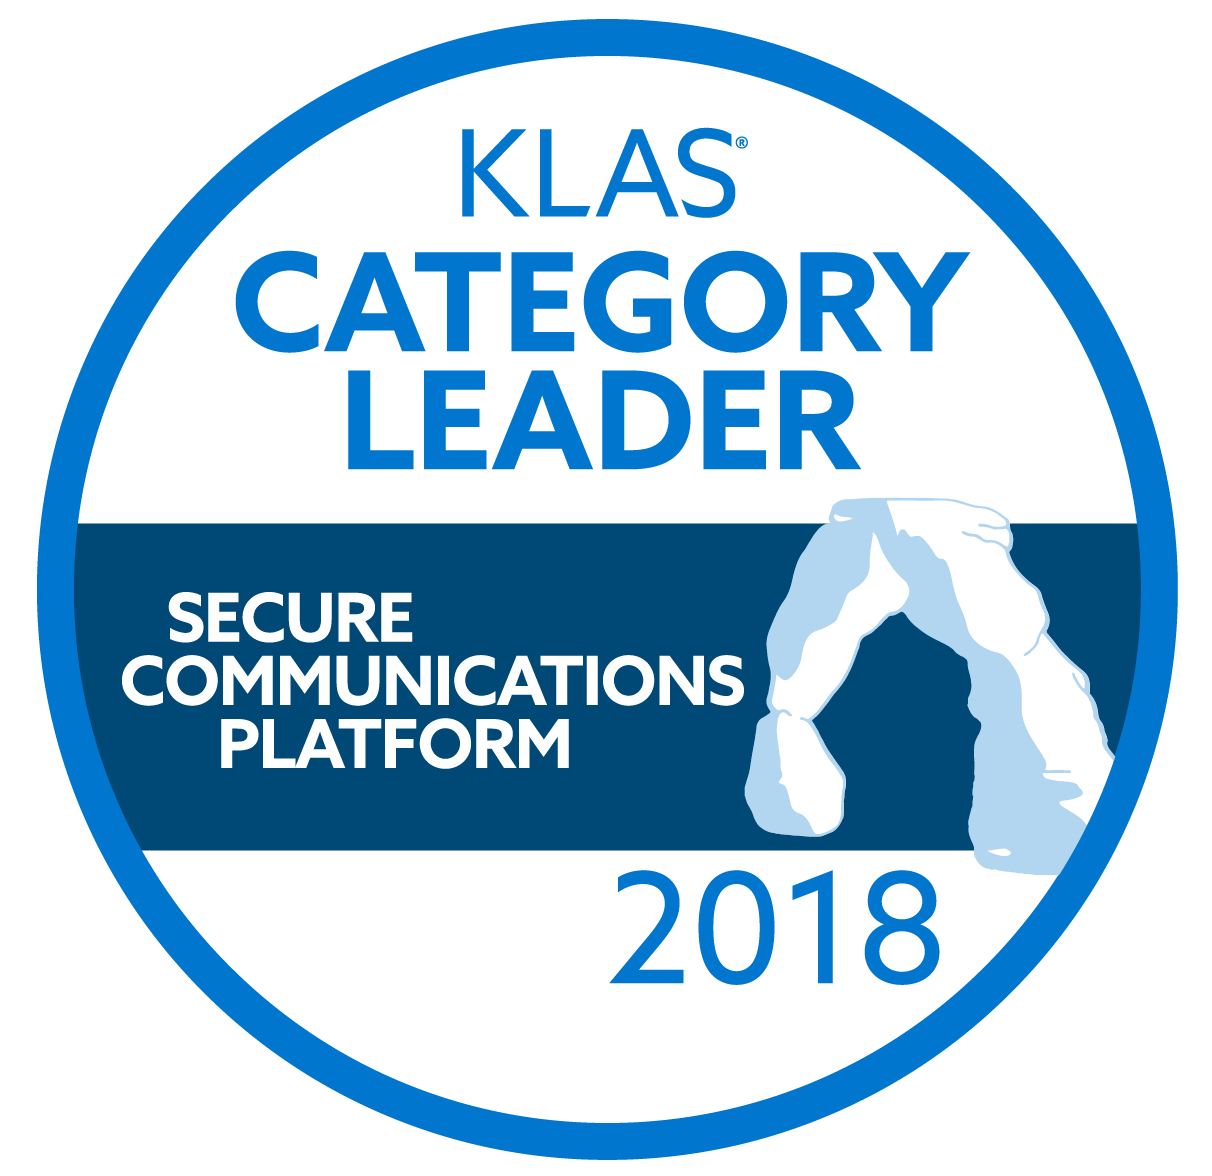 KLAS-Category-Leader-Secure-Communications